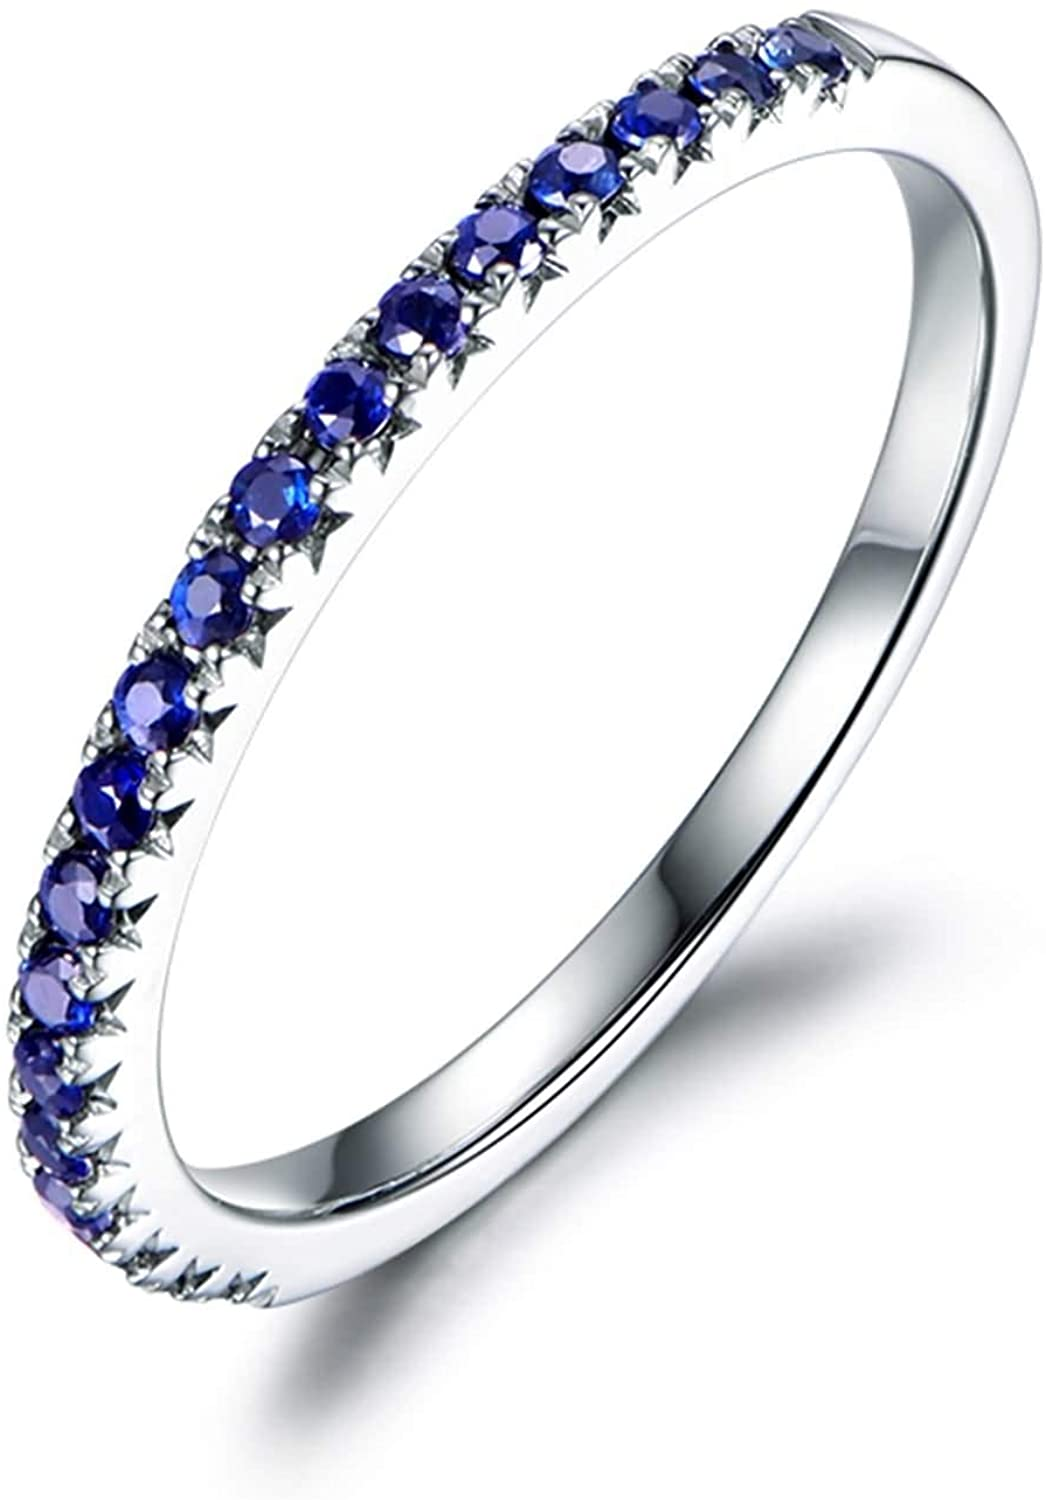 AMDXD Ring Engagement White Gold 18K, Band Ring with Sapphire 0.24ct Anniversary Rings for Women White Gold Size 8